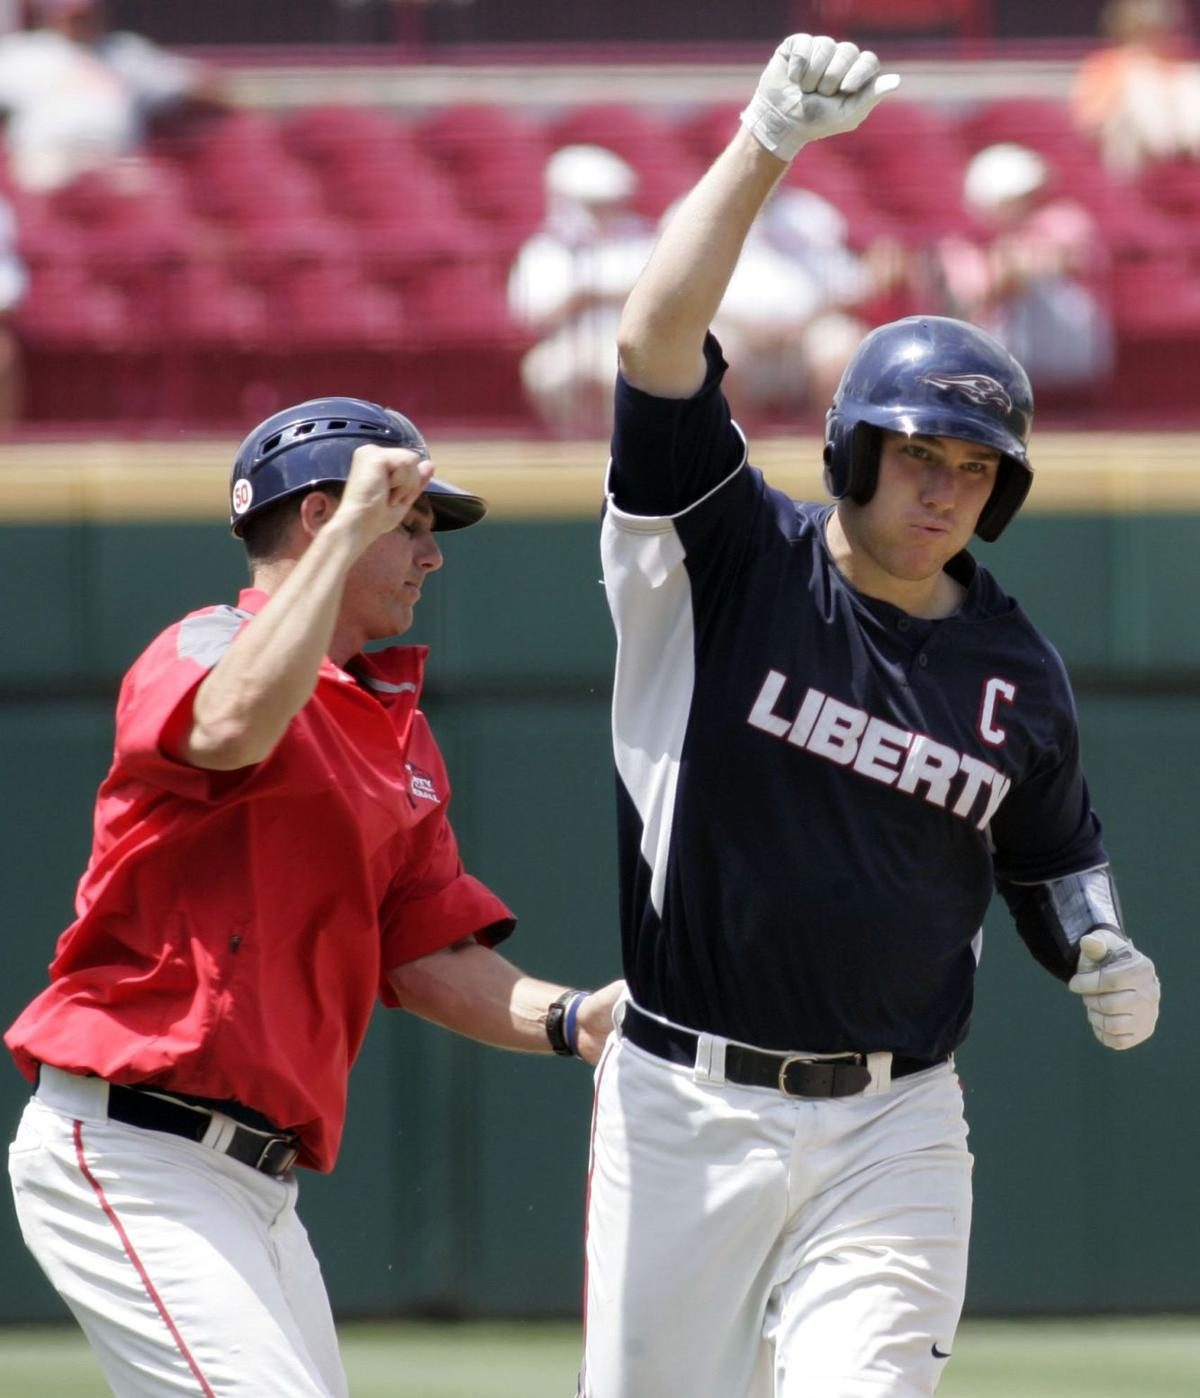 Liberty's battery sends Clemson's season to the brink